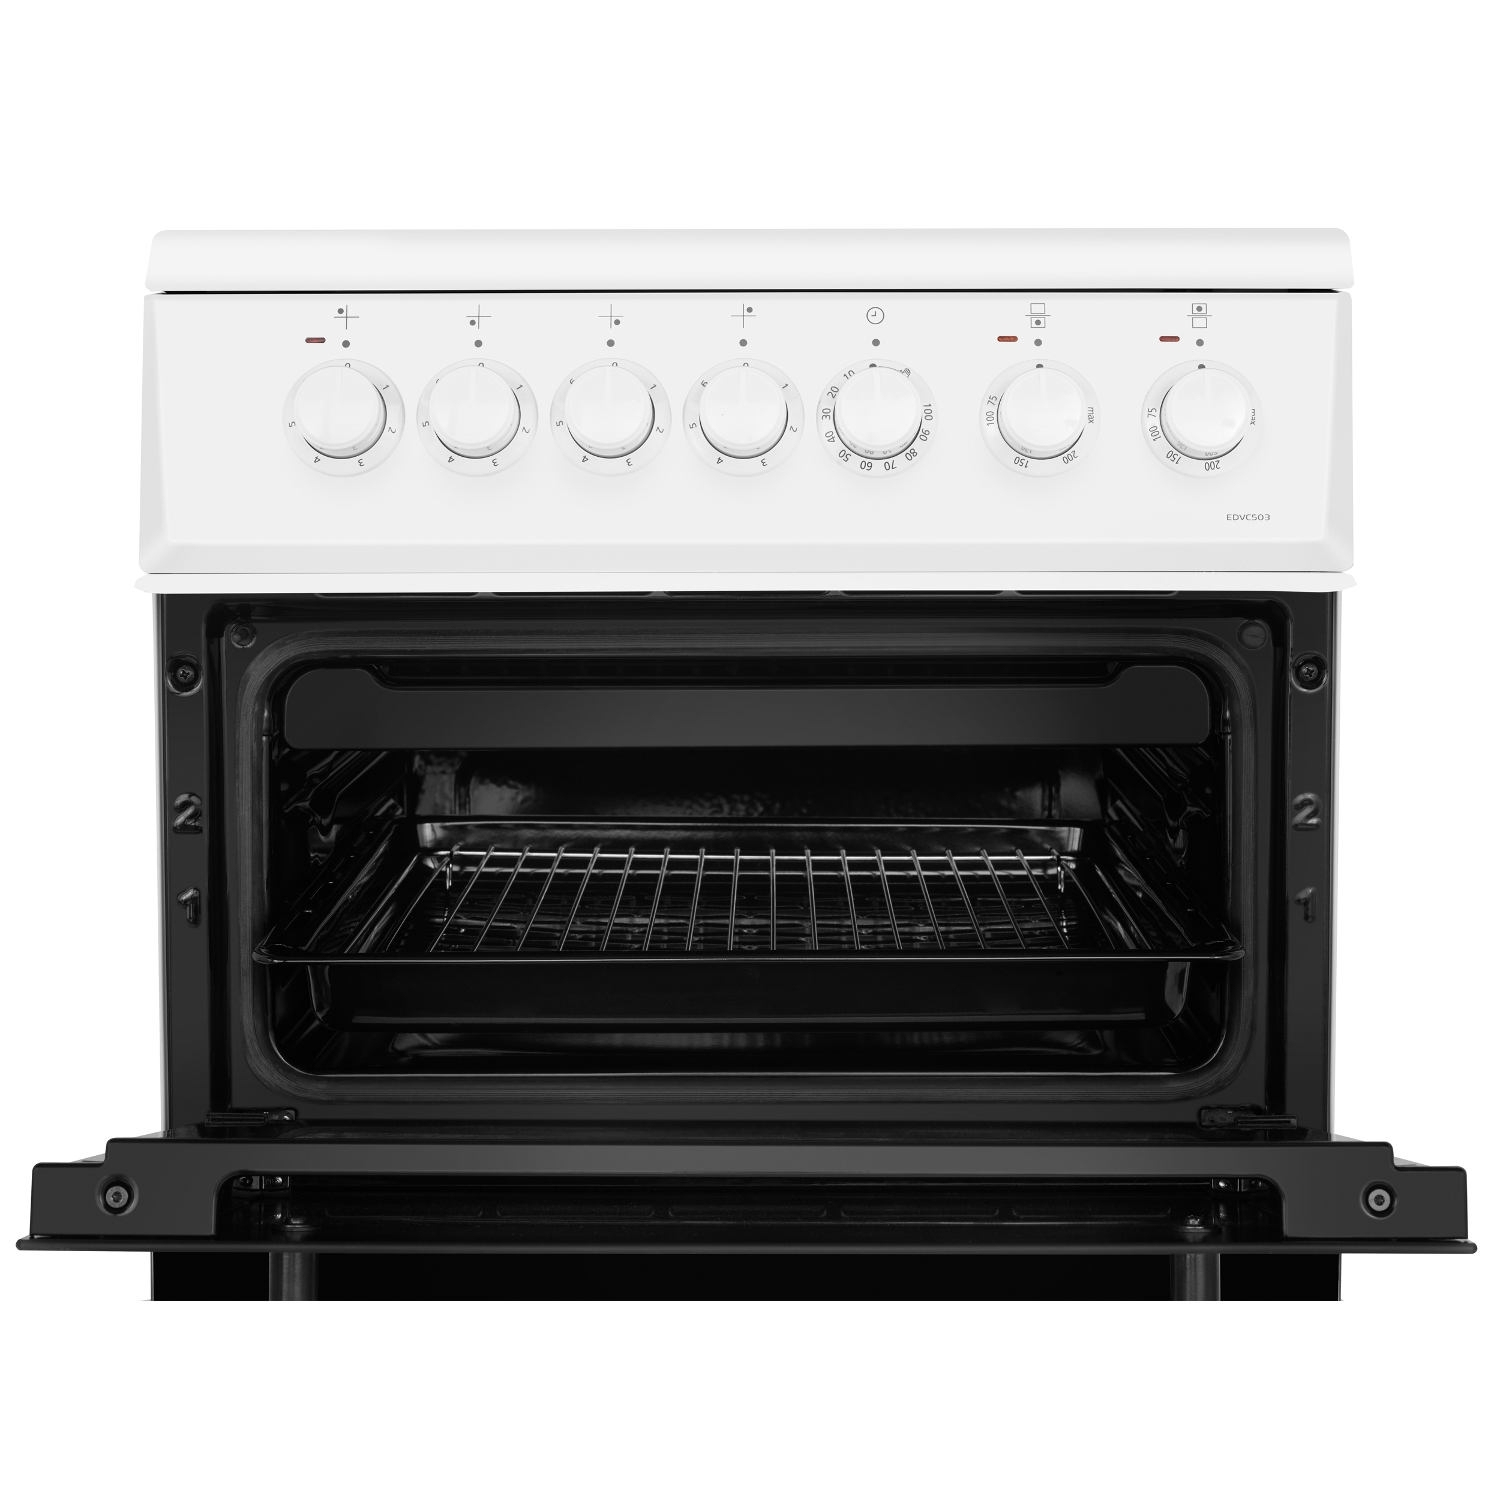 Beko 50cm Double Oven Electric Cooker - White - A/A Rated - 4